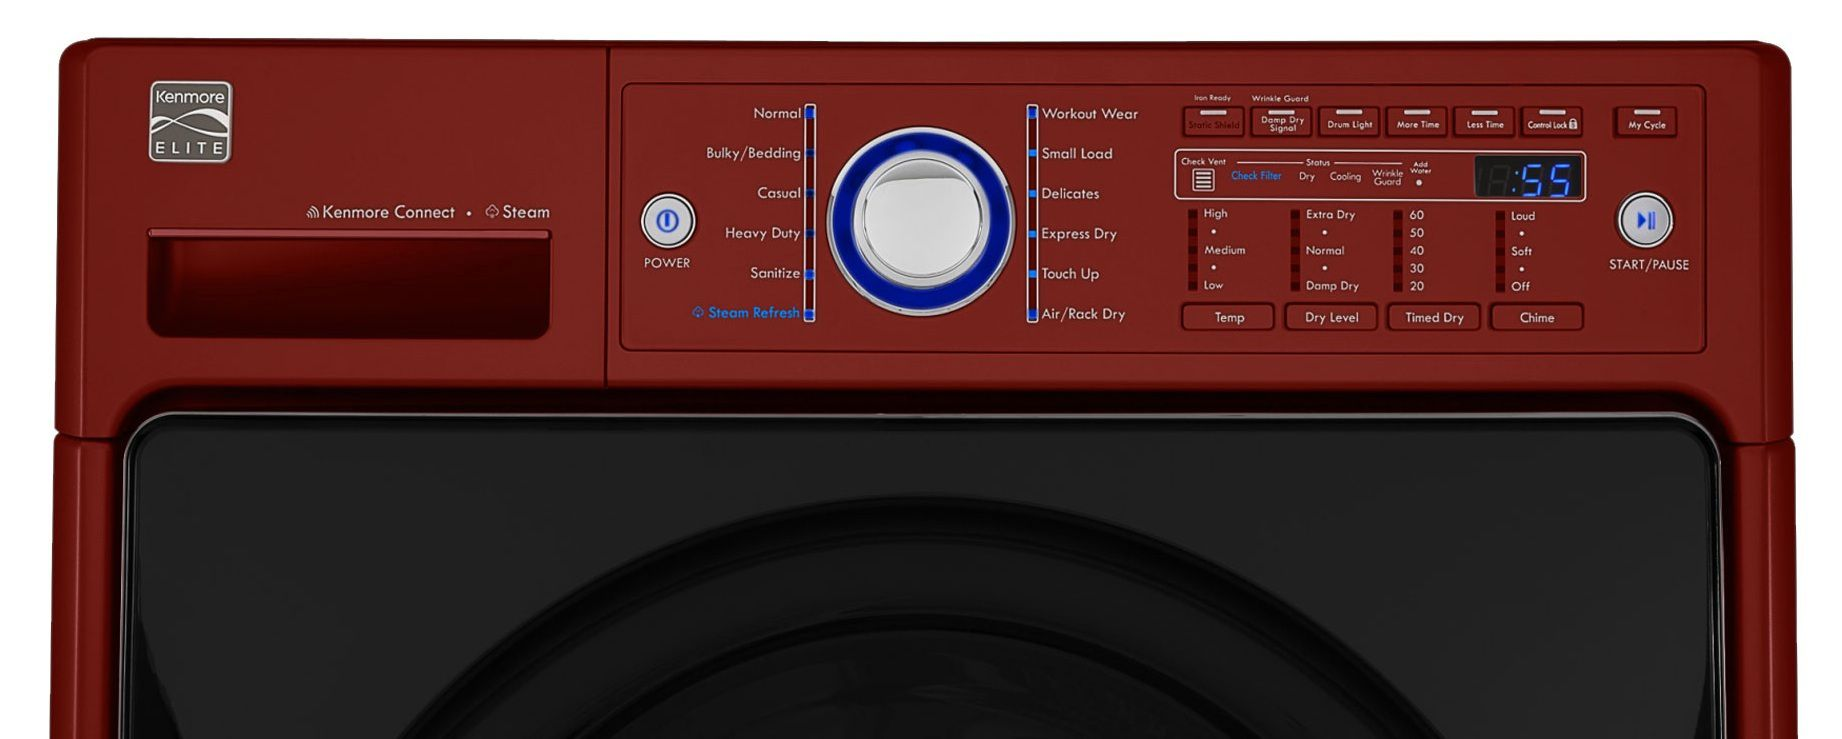 Kenmore Elite 7.4 cu. ft. Steam Dryer - Chili Pepper